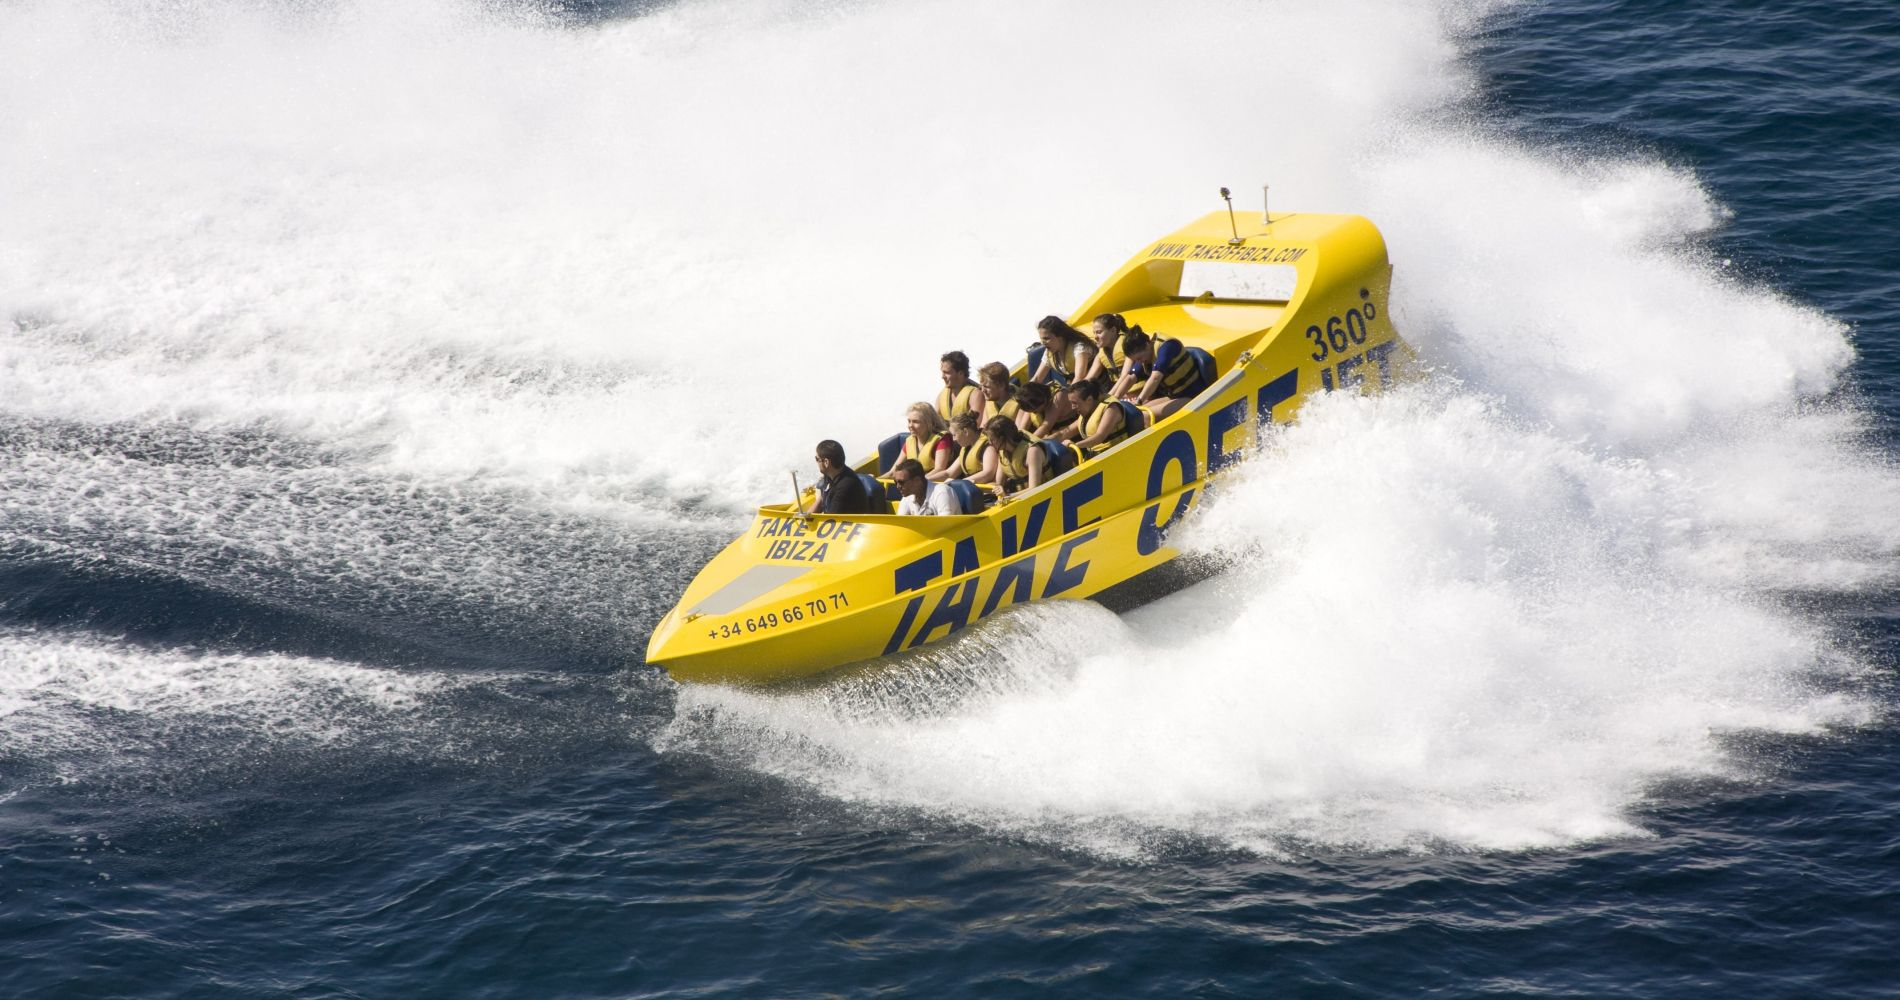 1-Hour Jet Boat 360 Ride in Ibiza